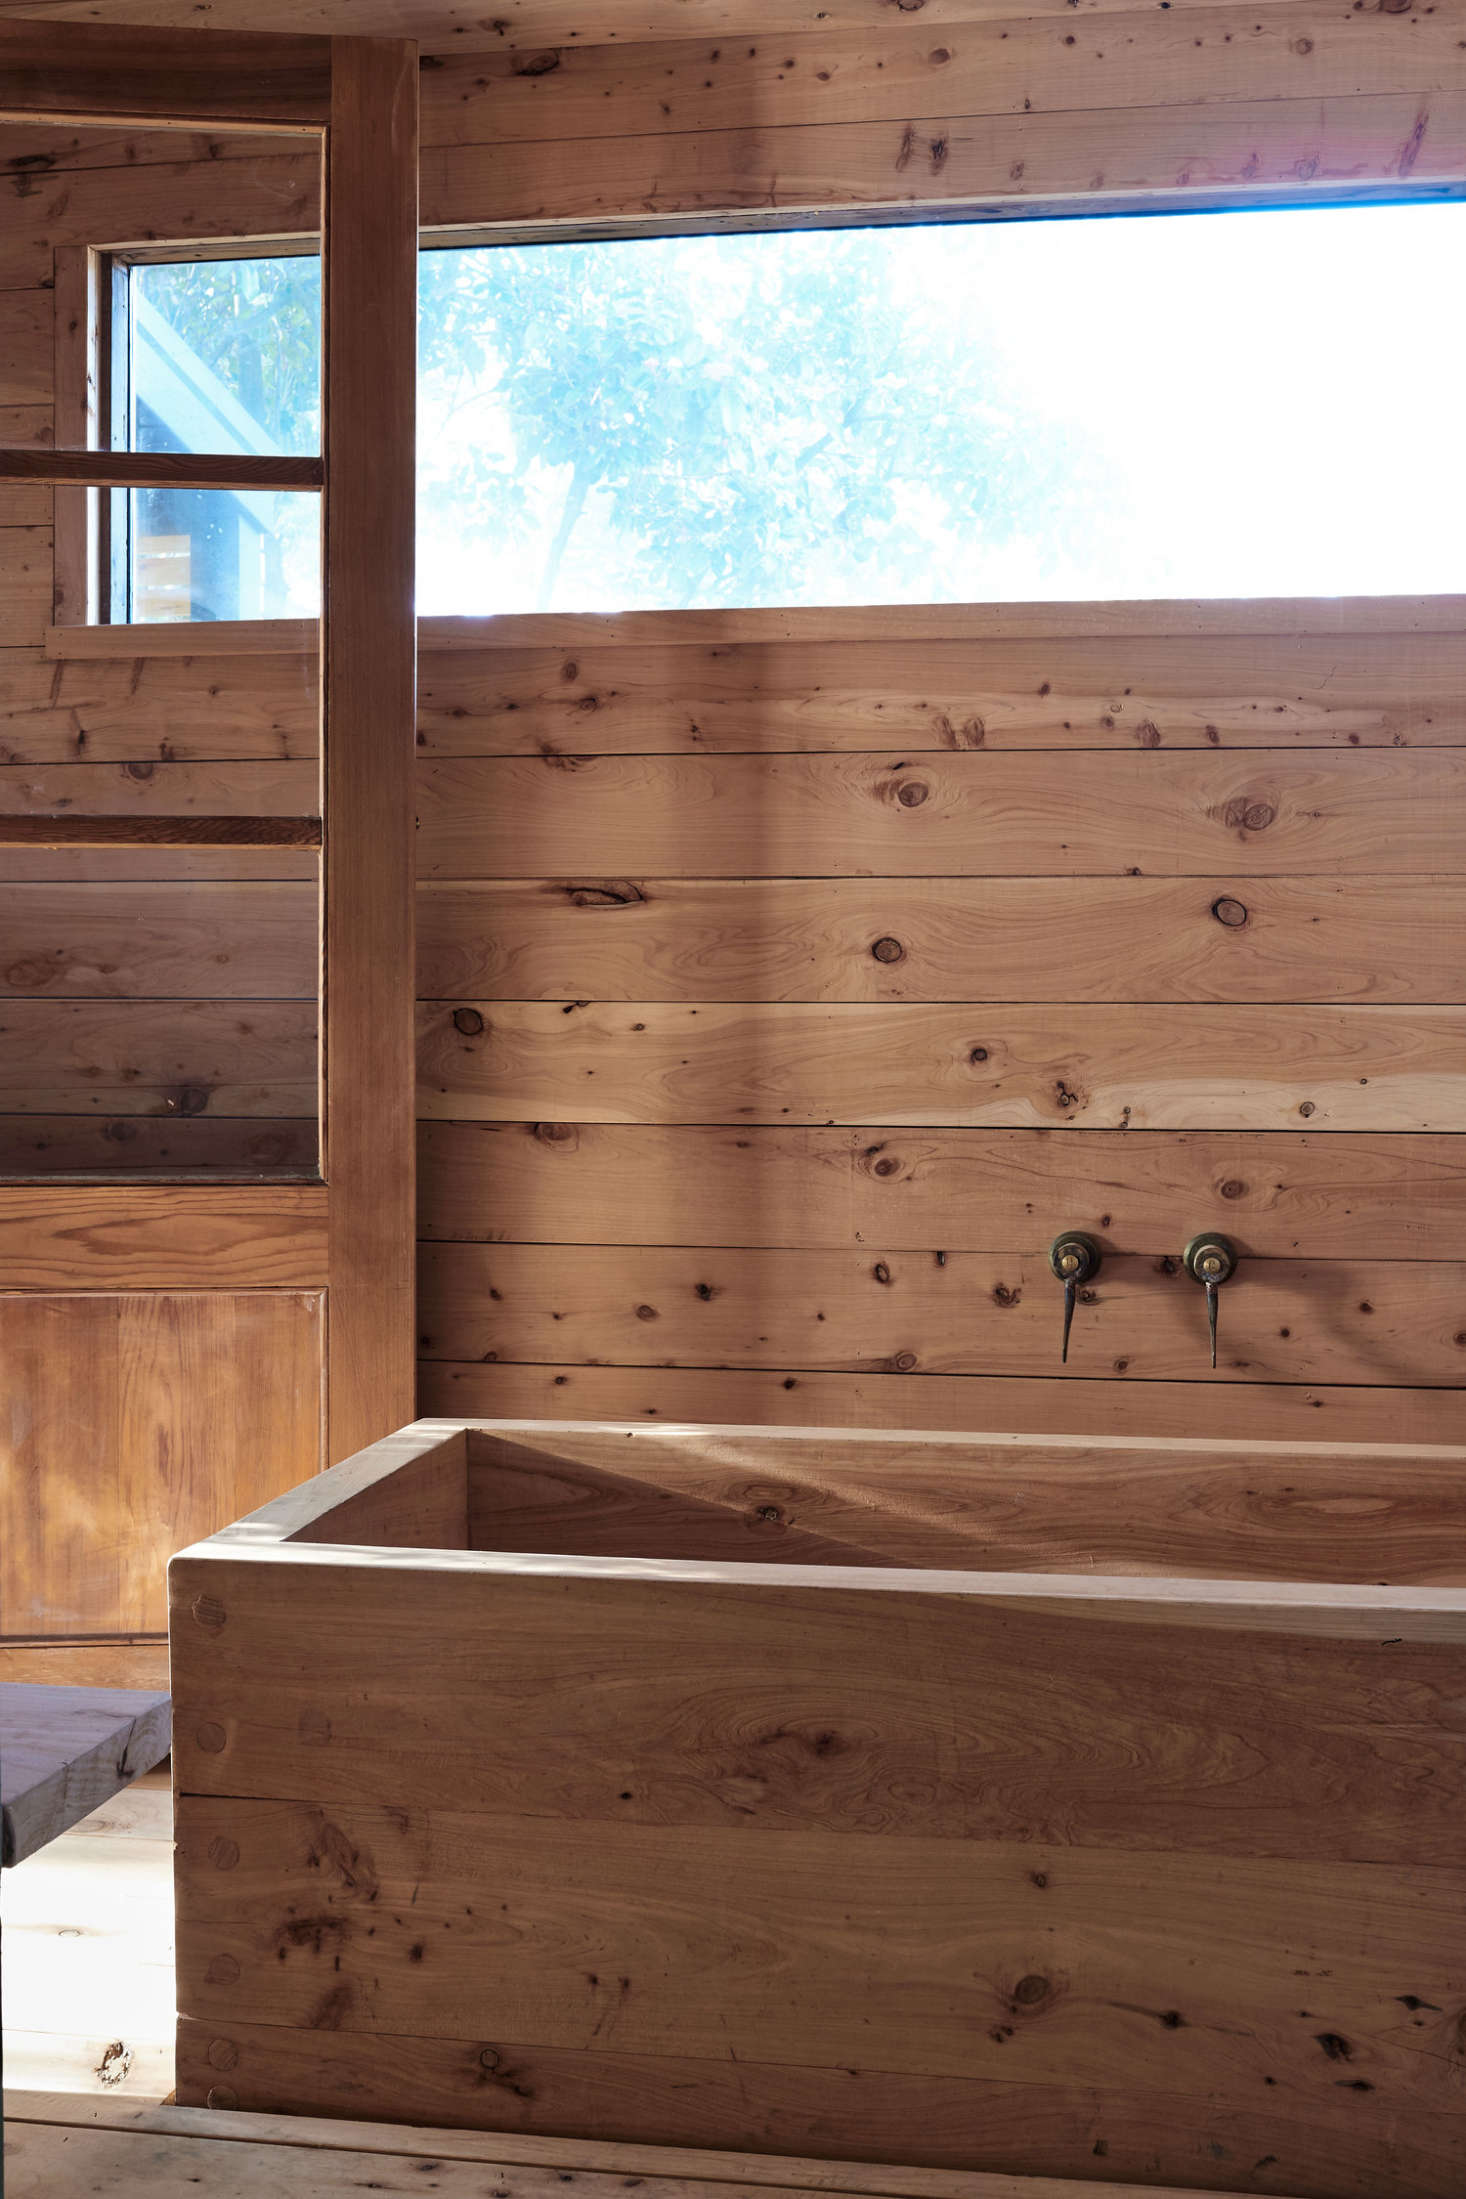 The Japanese bath occupies what had been a dilapidated shed attached to the cabin. &#8